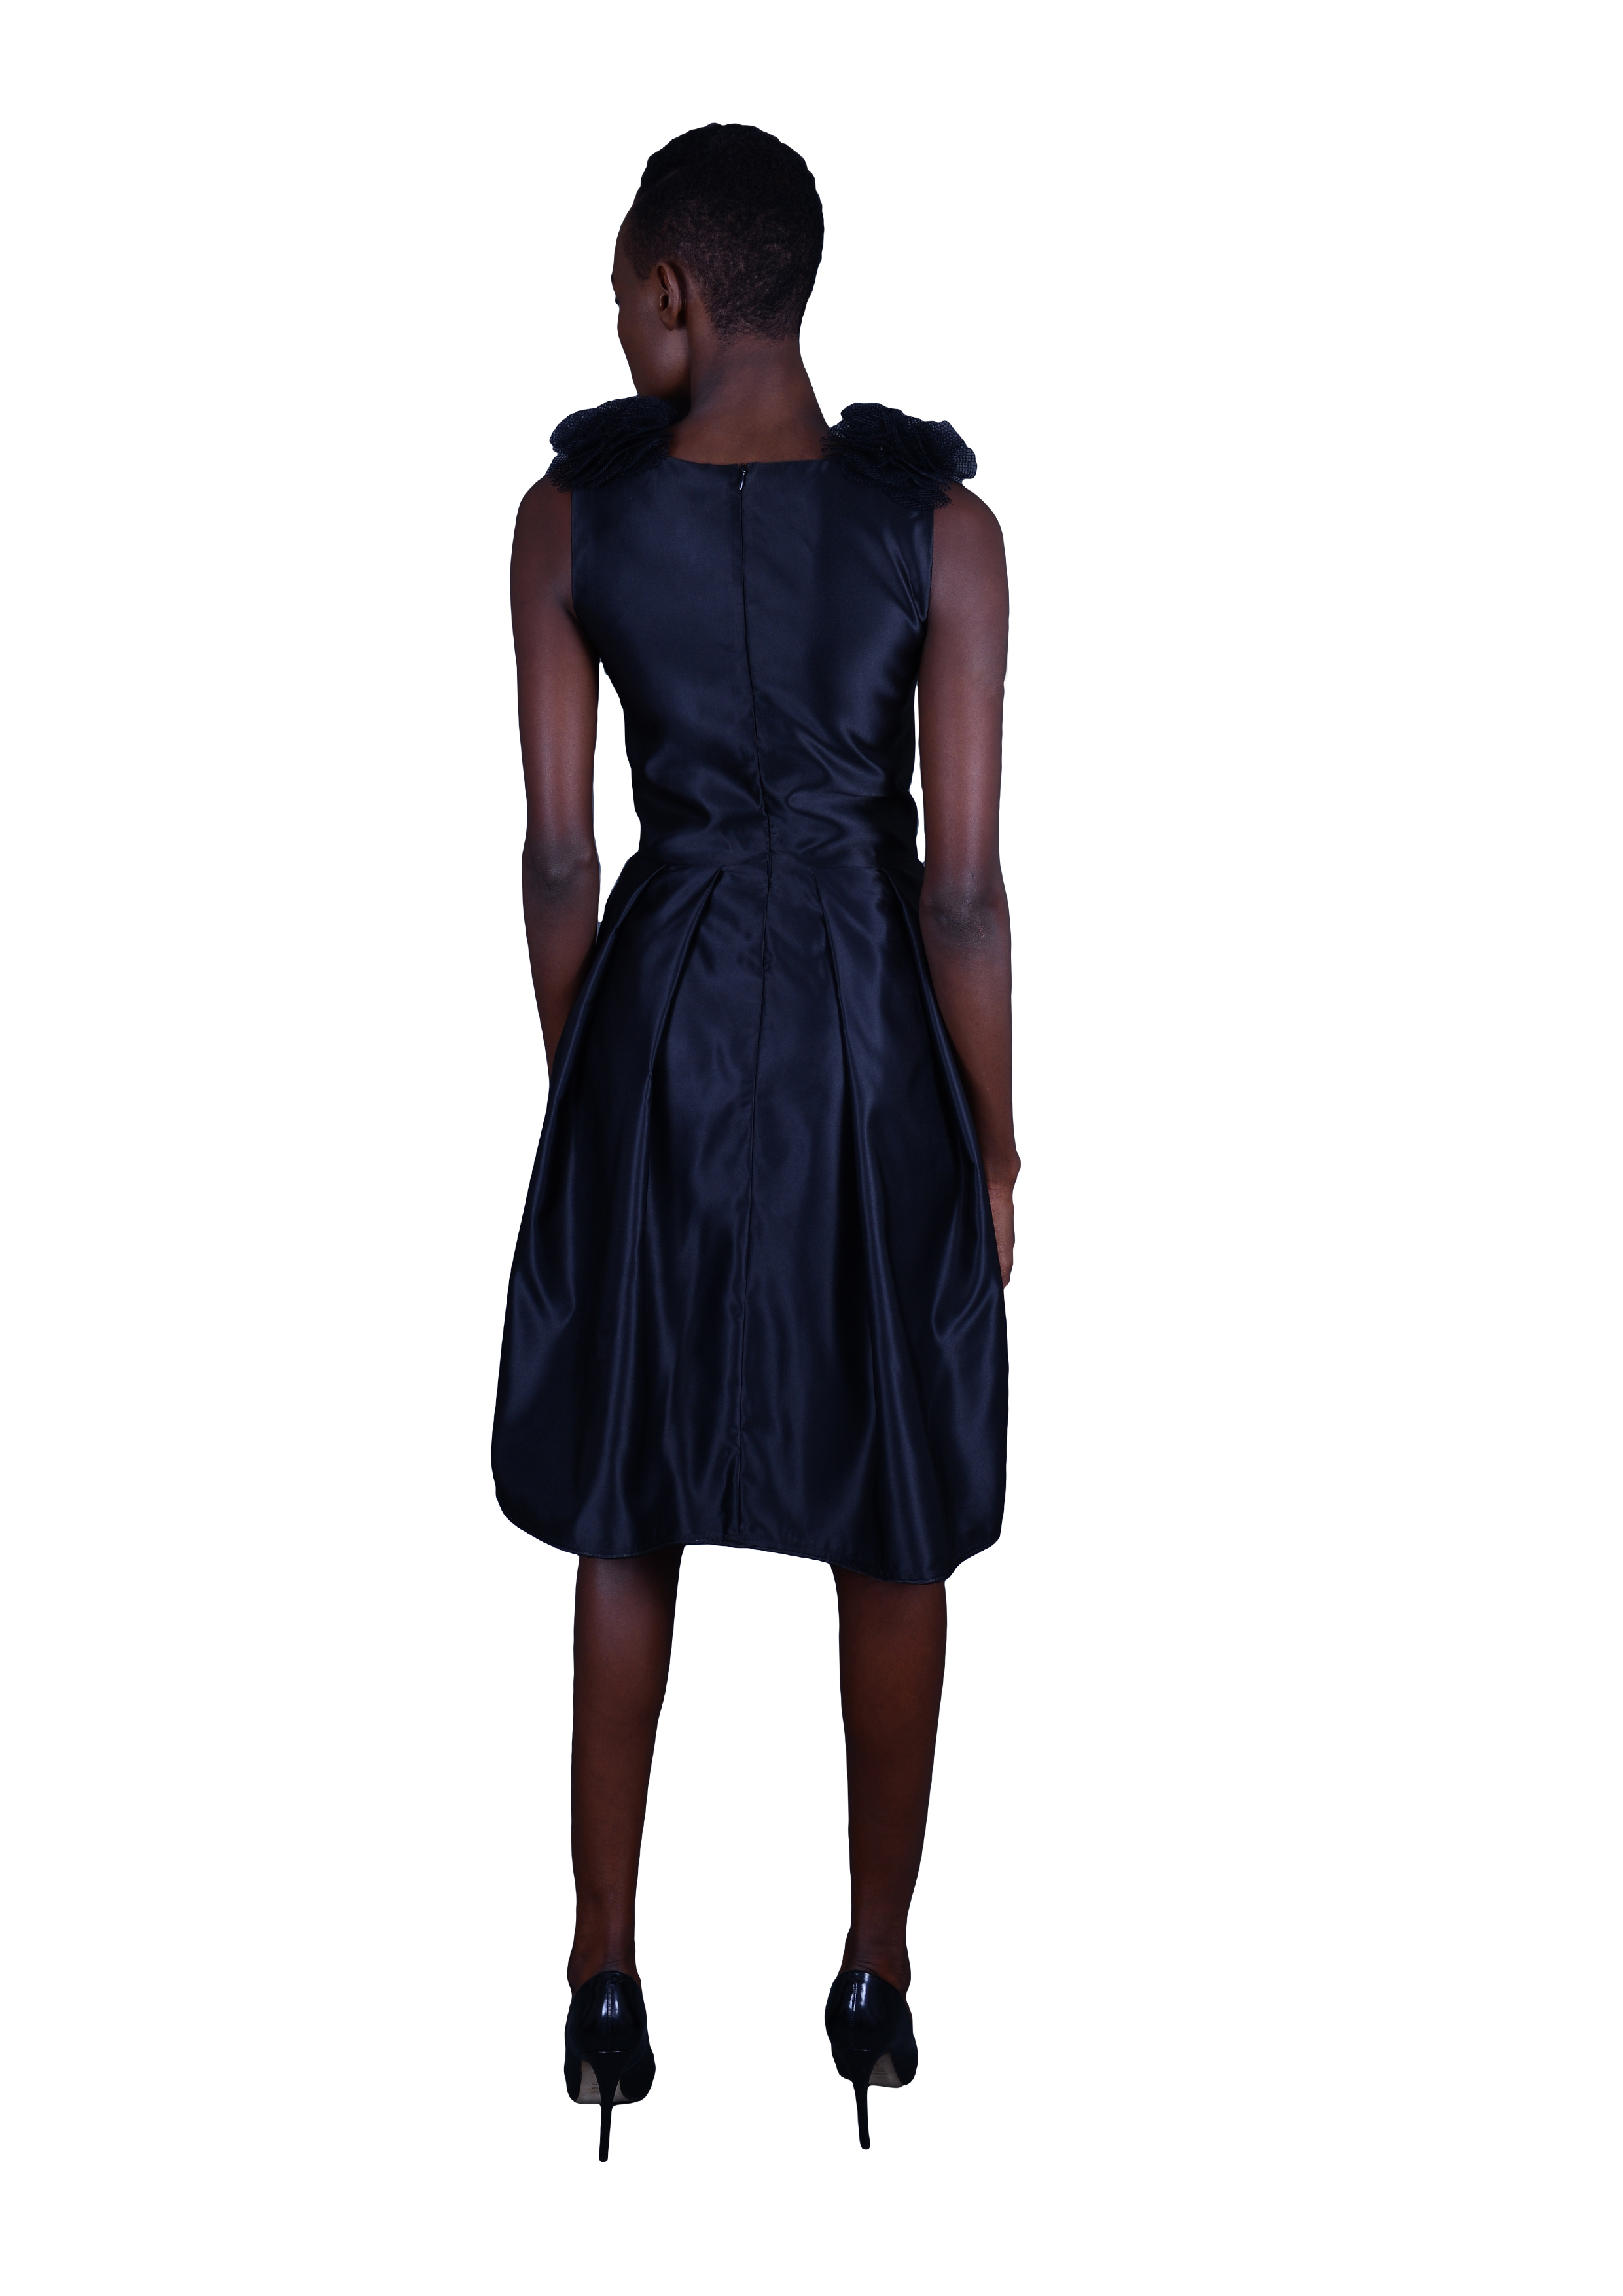 rubicon-clothing-alice-dress-with-pleats